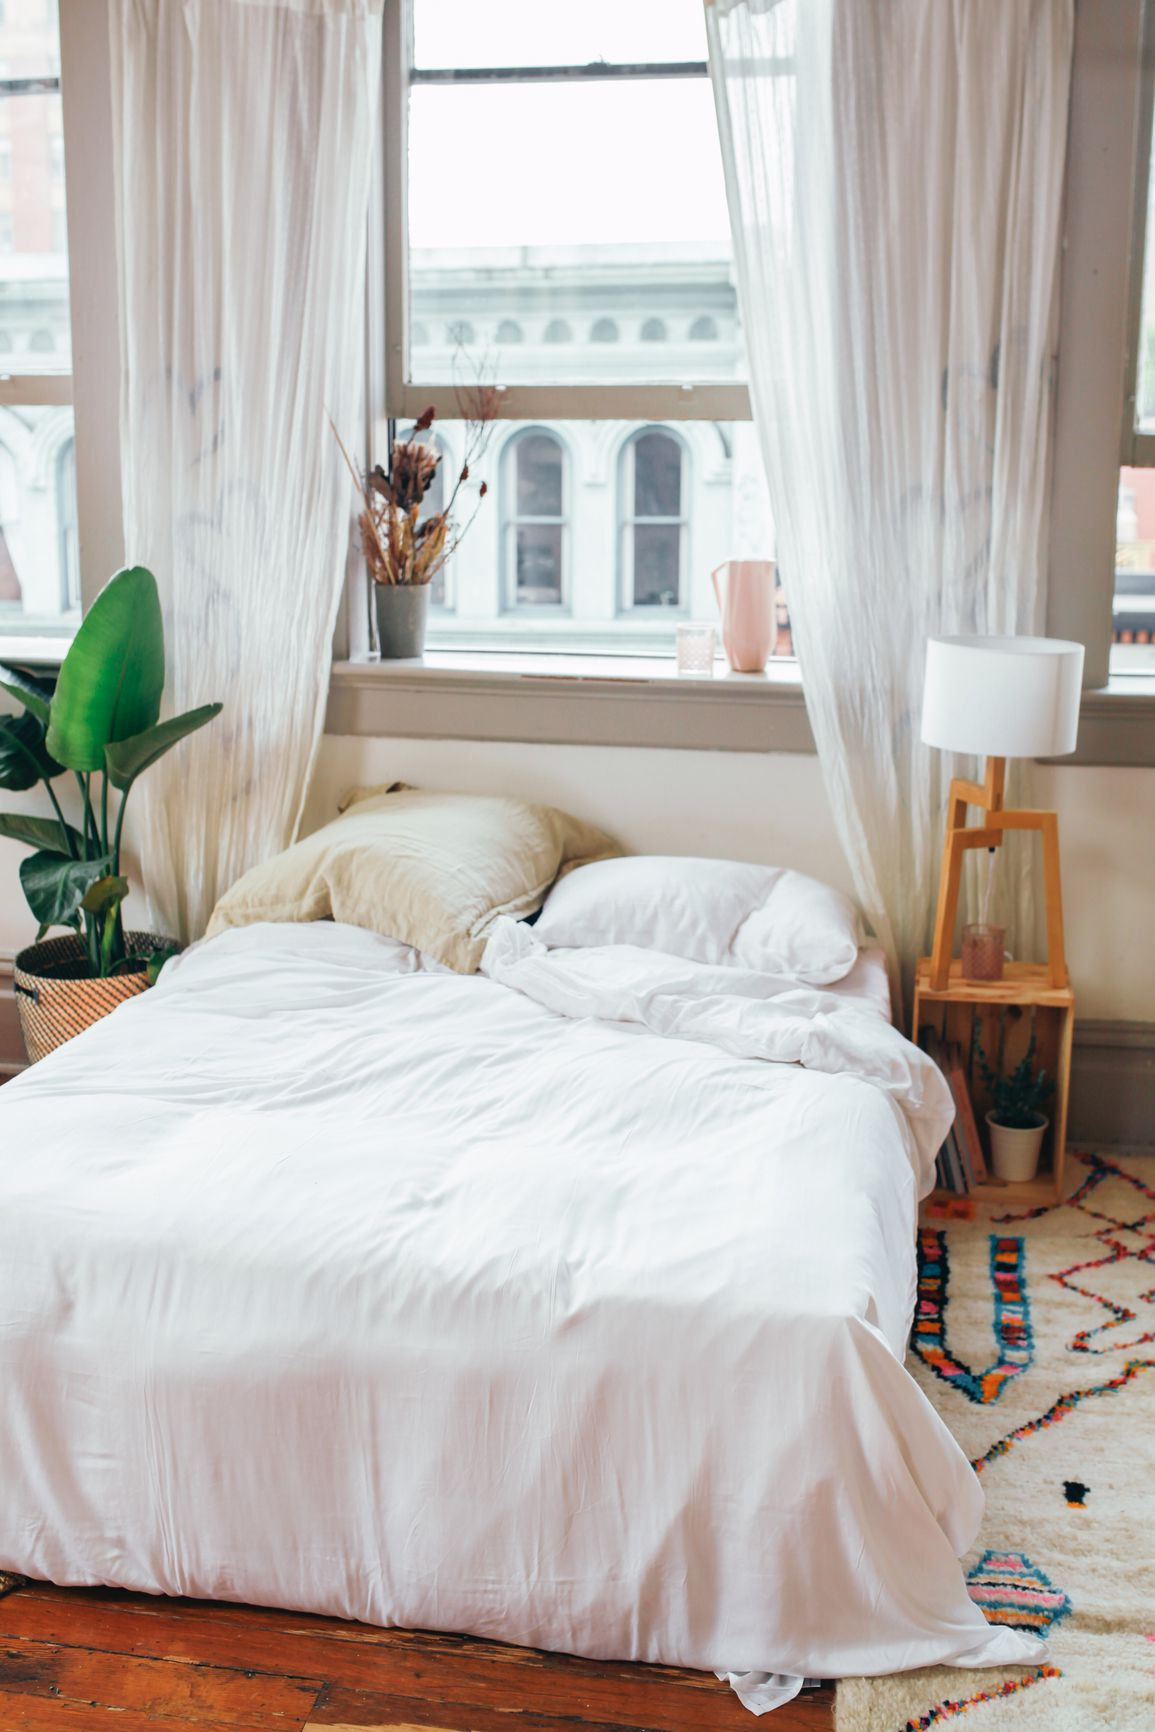 How To Care For Your Sheets